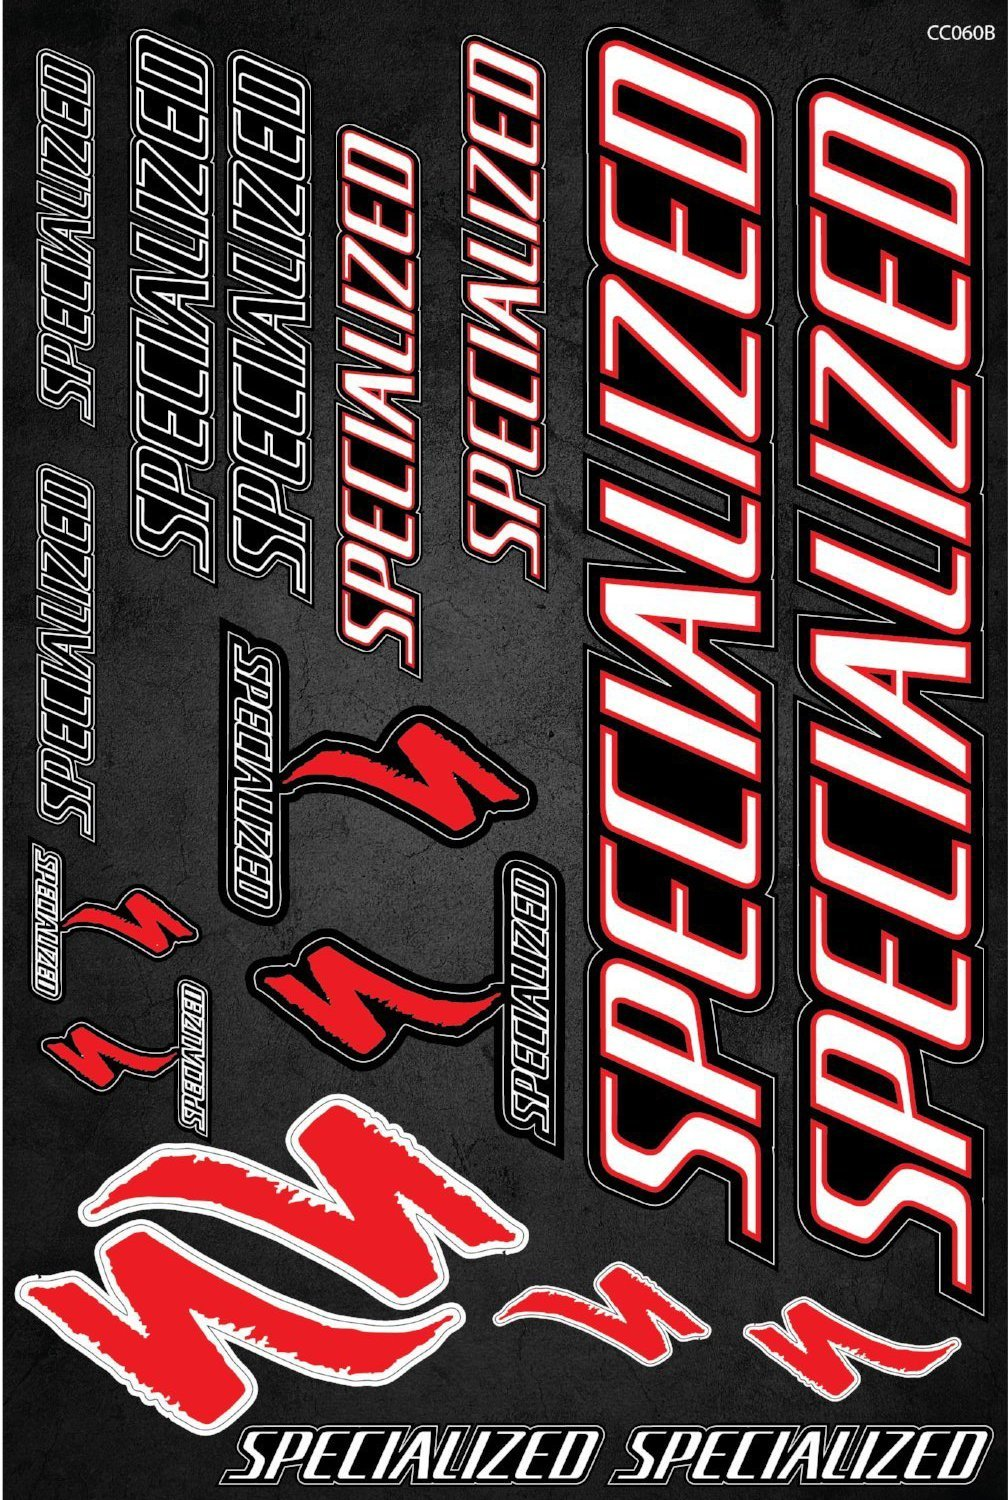 Specialized self-adhesive sticker for a bike - model 2